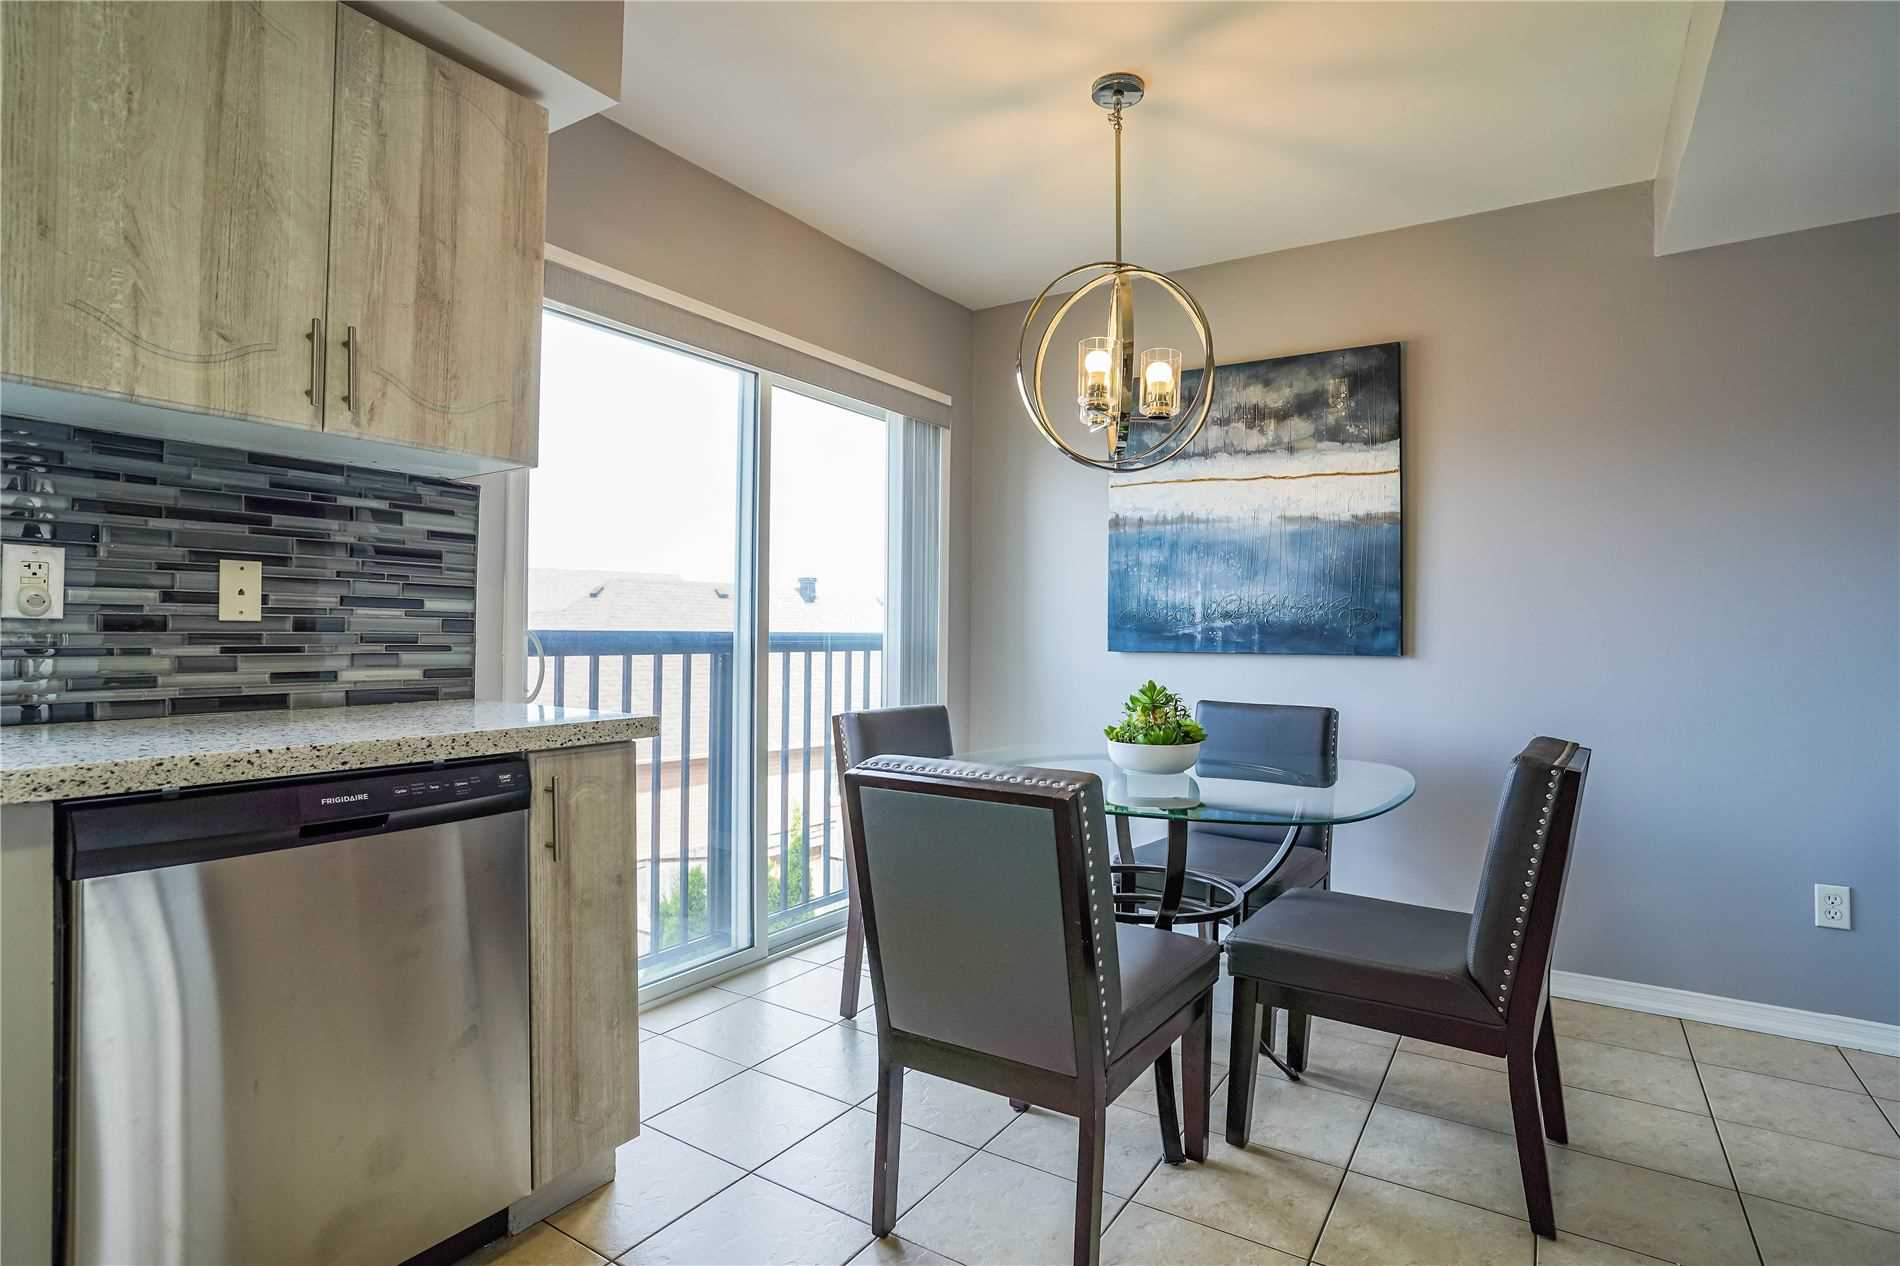 Image 22 of 25 showing inside of 3 Bedroom Condo Townhouse 3-Storey for Sale at 68 Oakins Lane W Unit# 34, Ajax L1T0H1